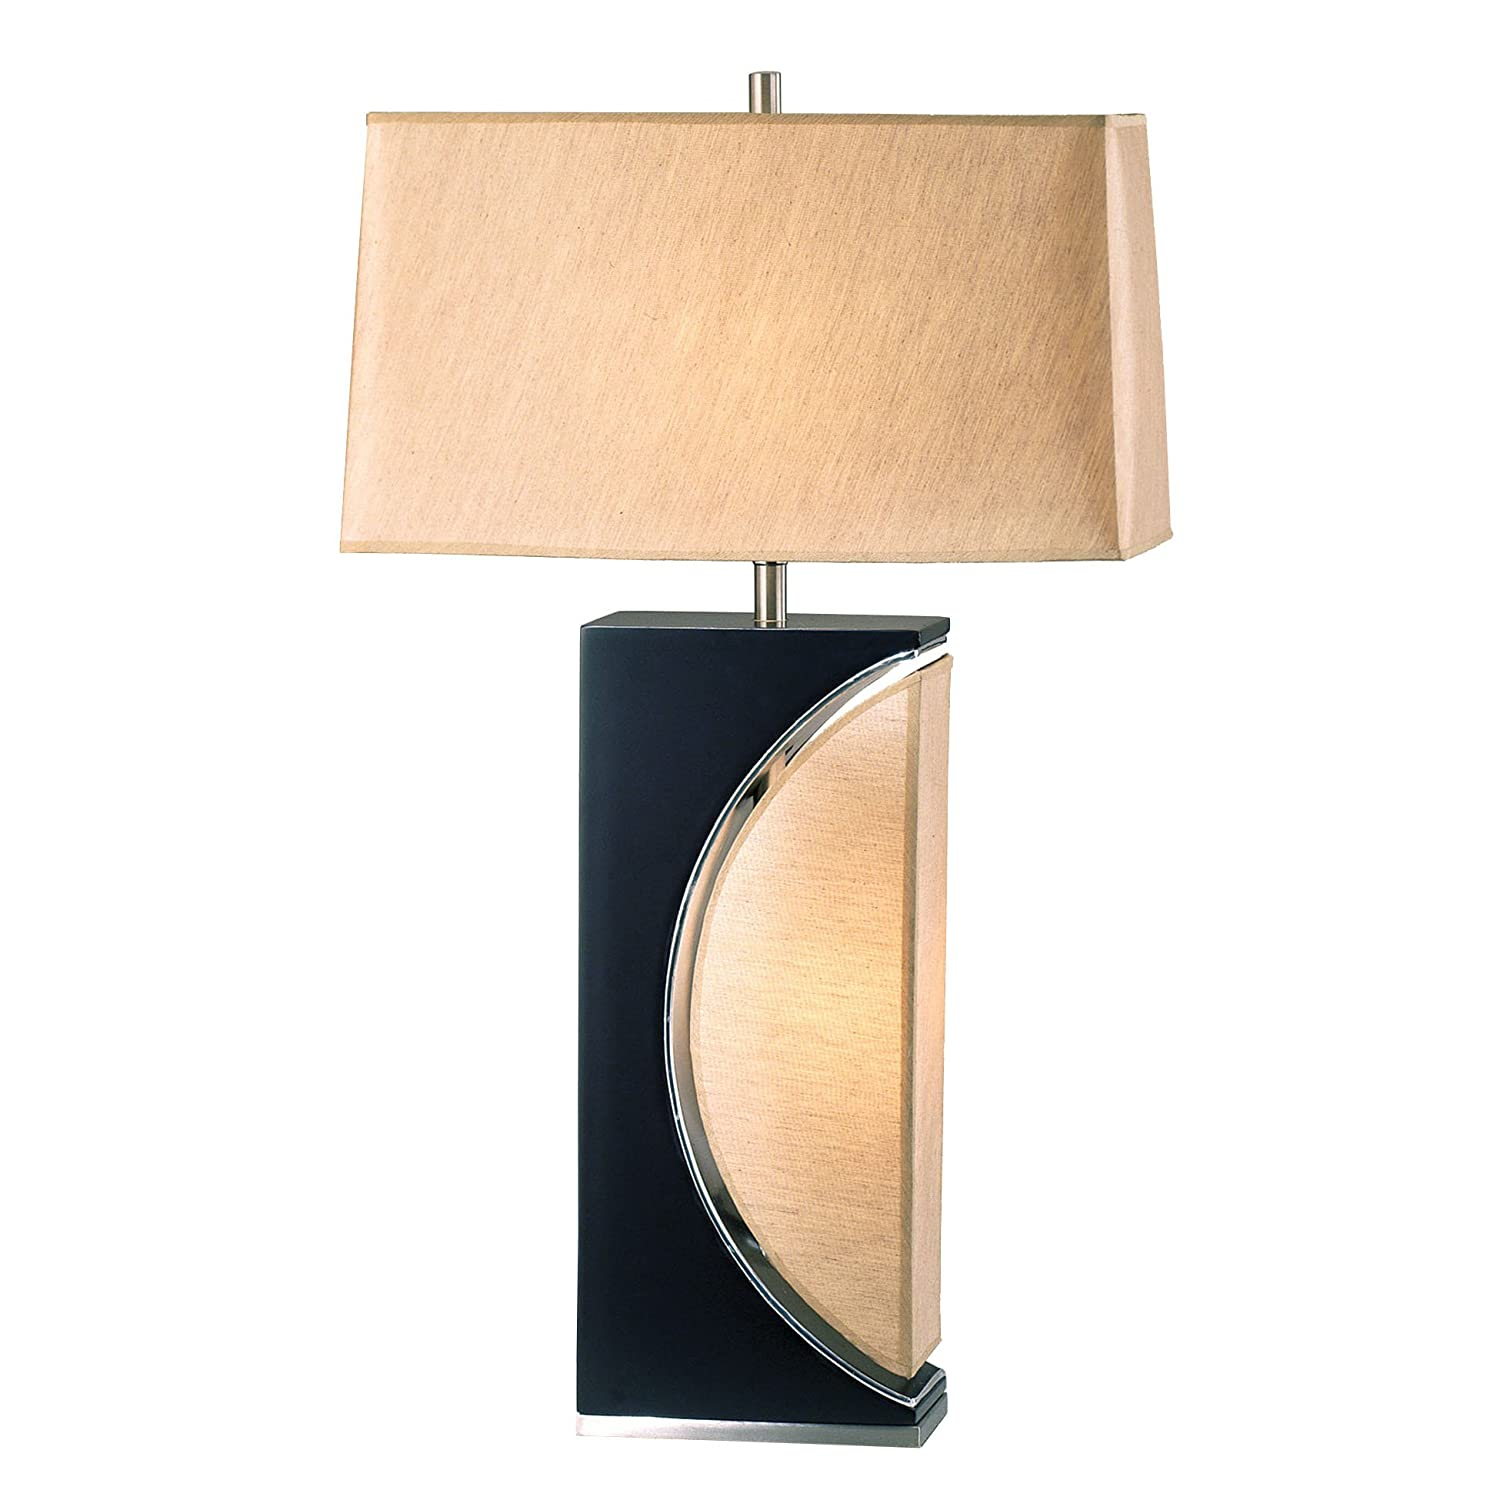 Nova Lighting 0736 Half Moon Table Lamp Dark Brown Wood /& Brushed Nickel with Etruscan Gold Shade